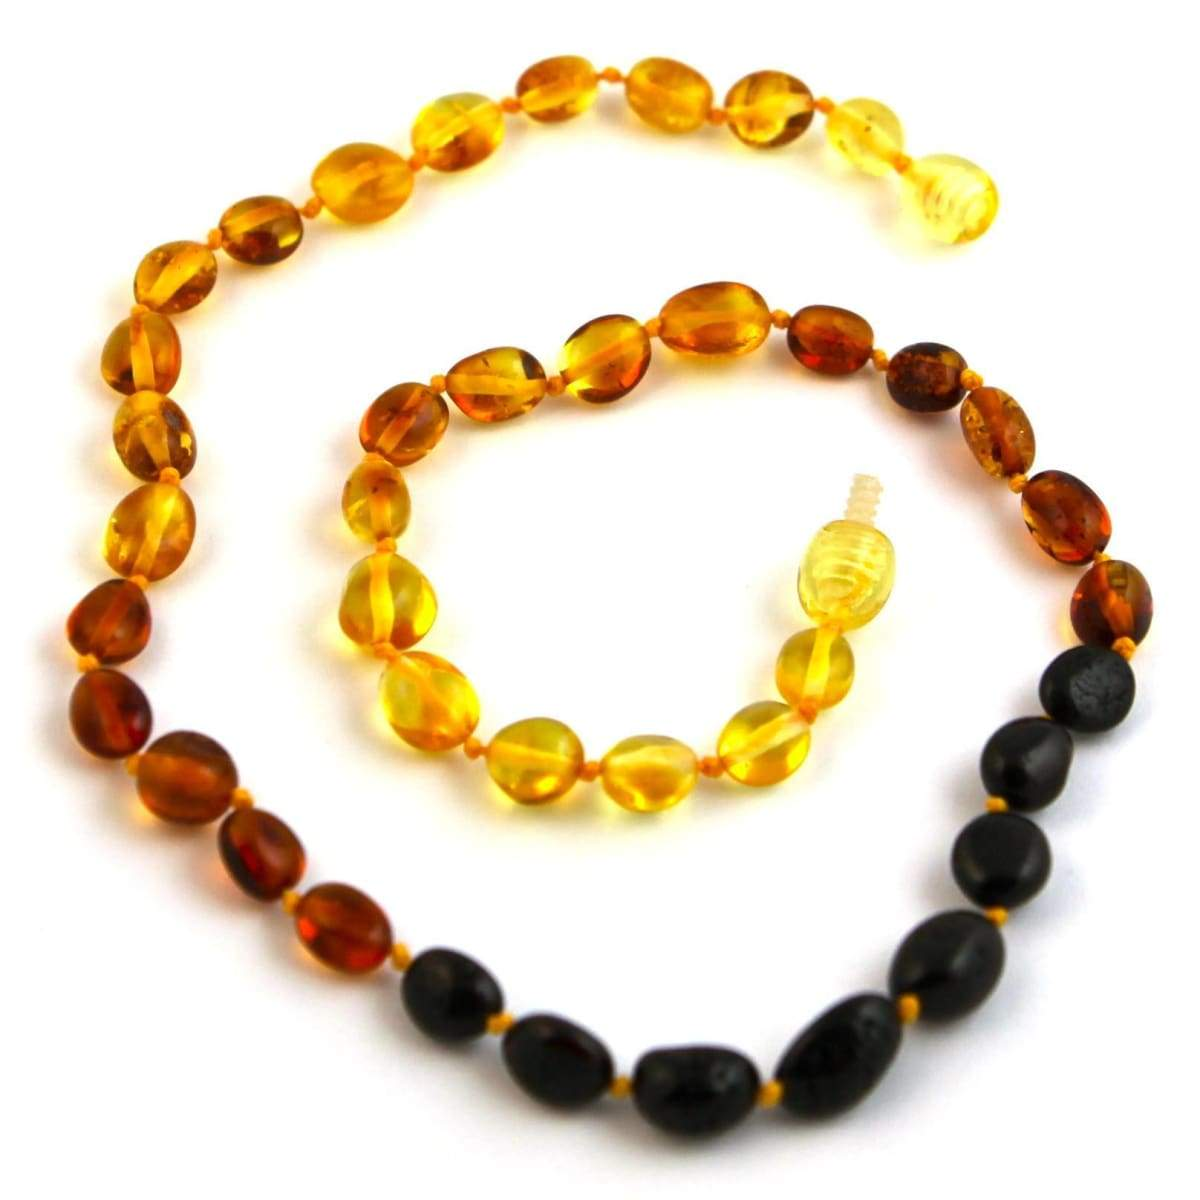 Baltic Amber Rainbow Bean - 16 Necklace - Baltic Amber Jewelry